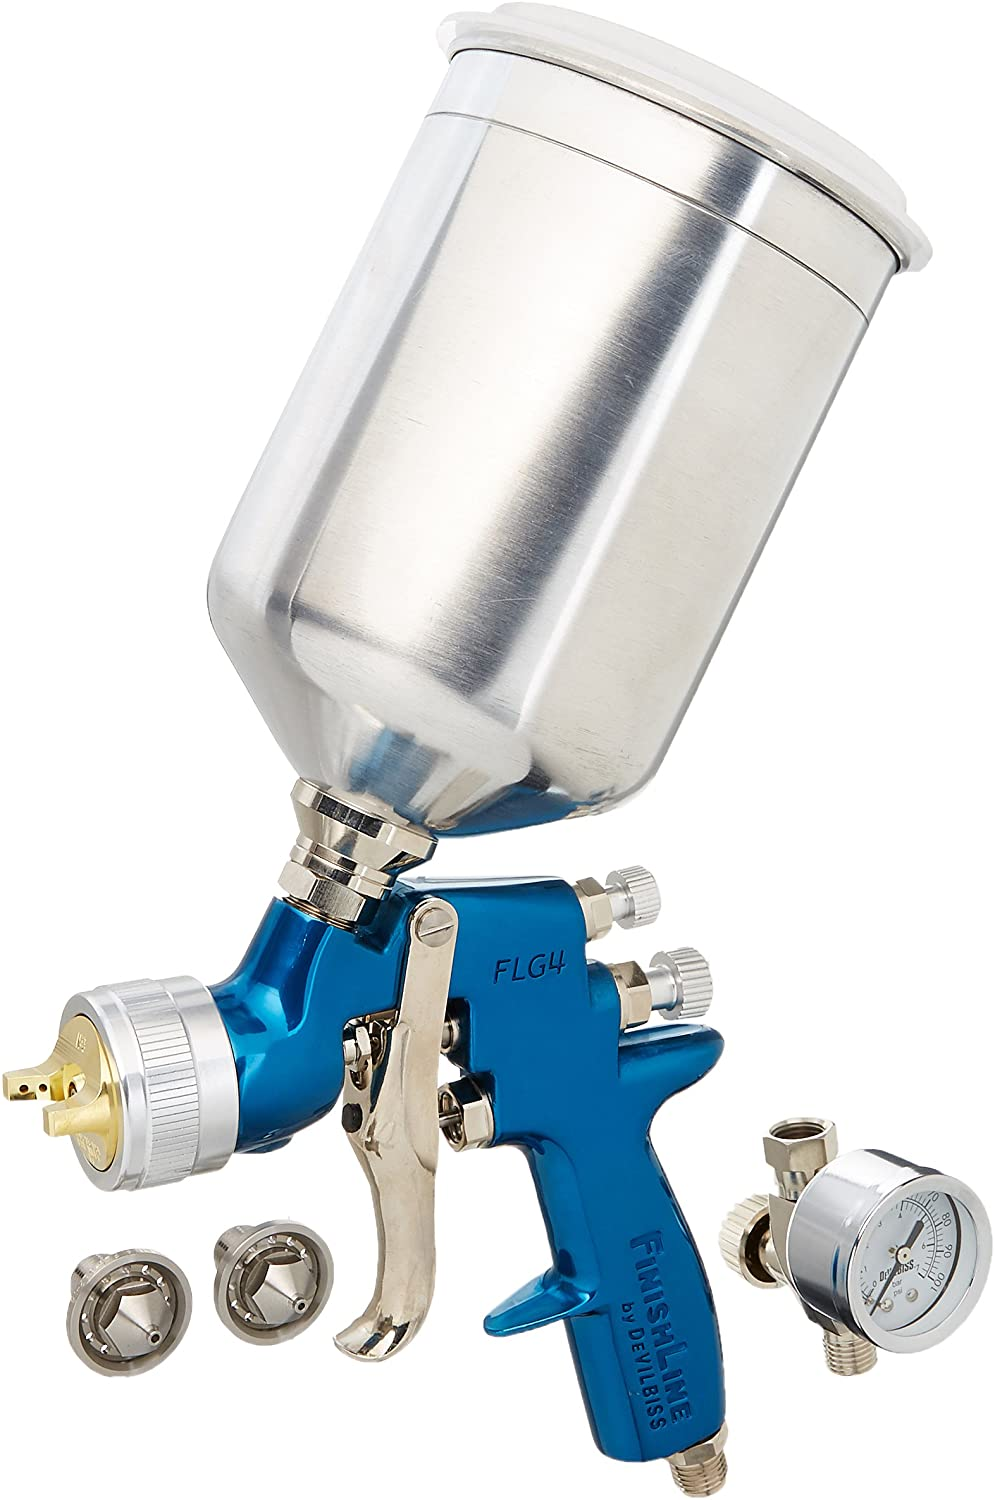 DeVilbiss 803558 Finishline 4 FLG-670  HVLP Gravity Feed Paint Gun